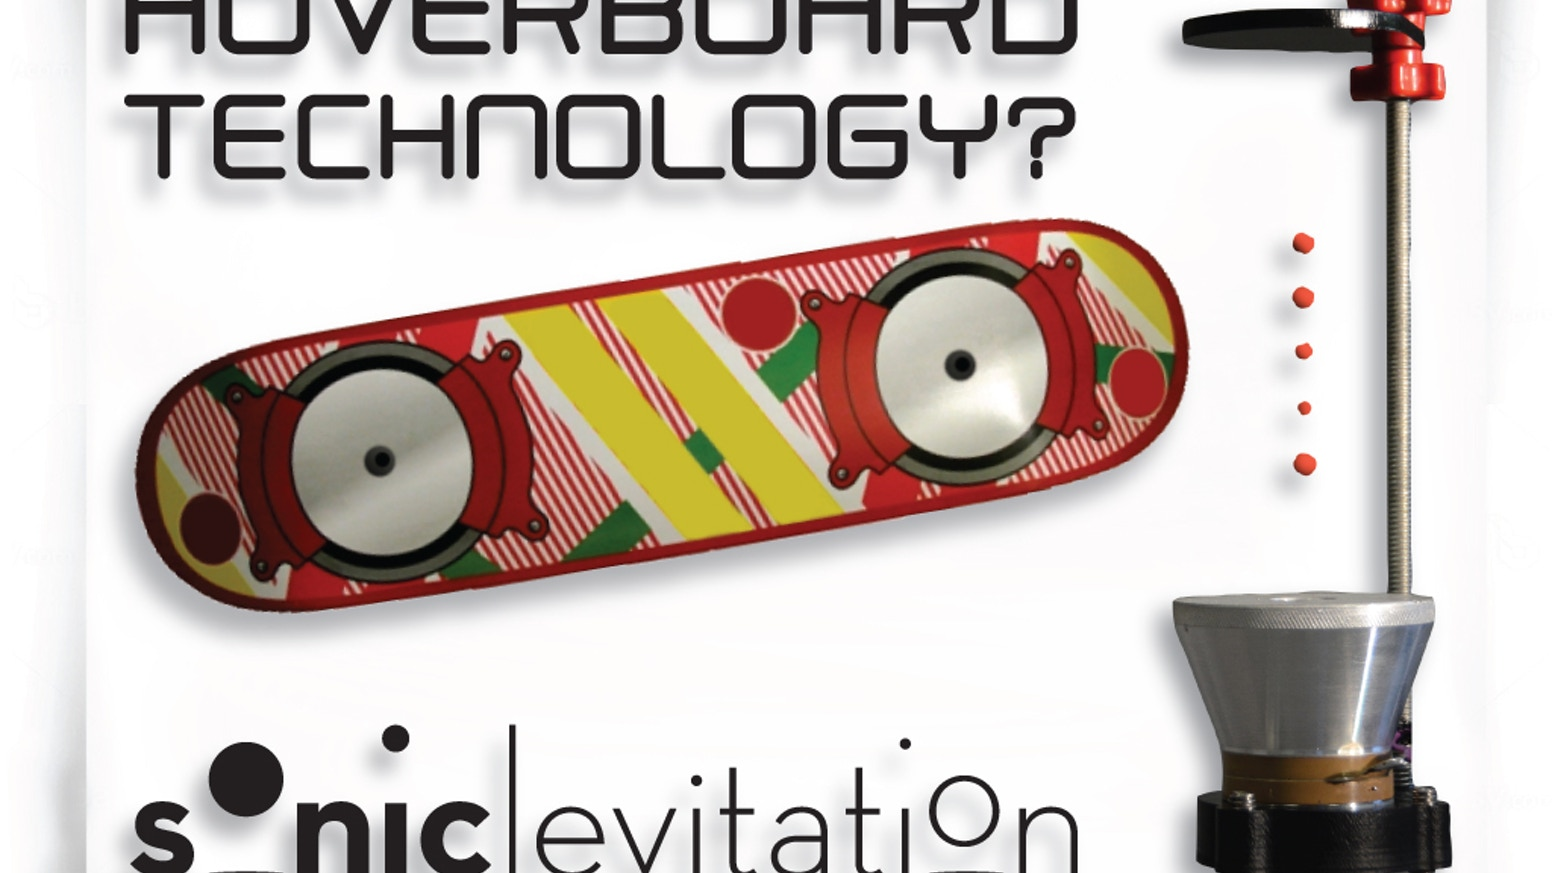 Ultrasonic Levitation Machine Learn The Science Of Gravity By New Group Electronics Project Ideas And A Cool Kit From